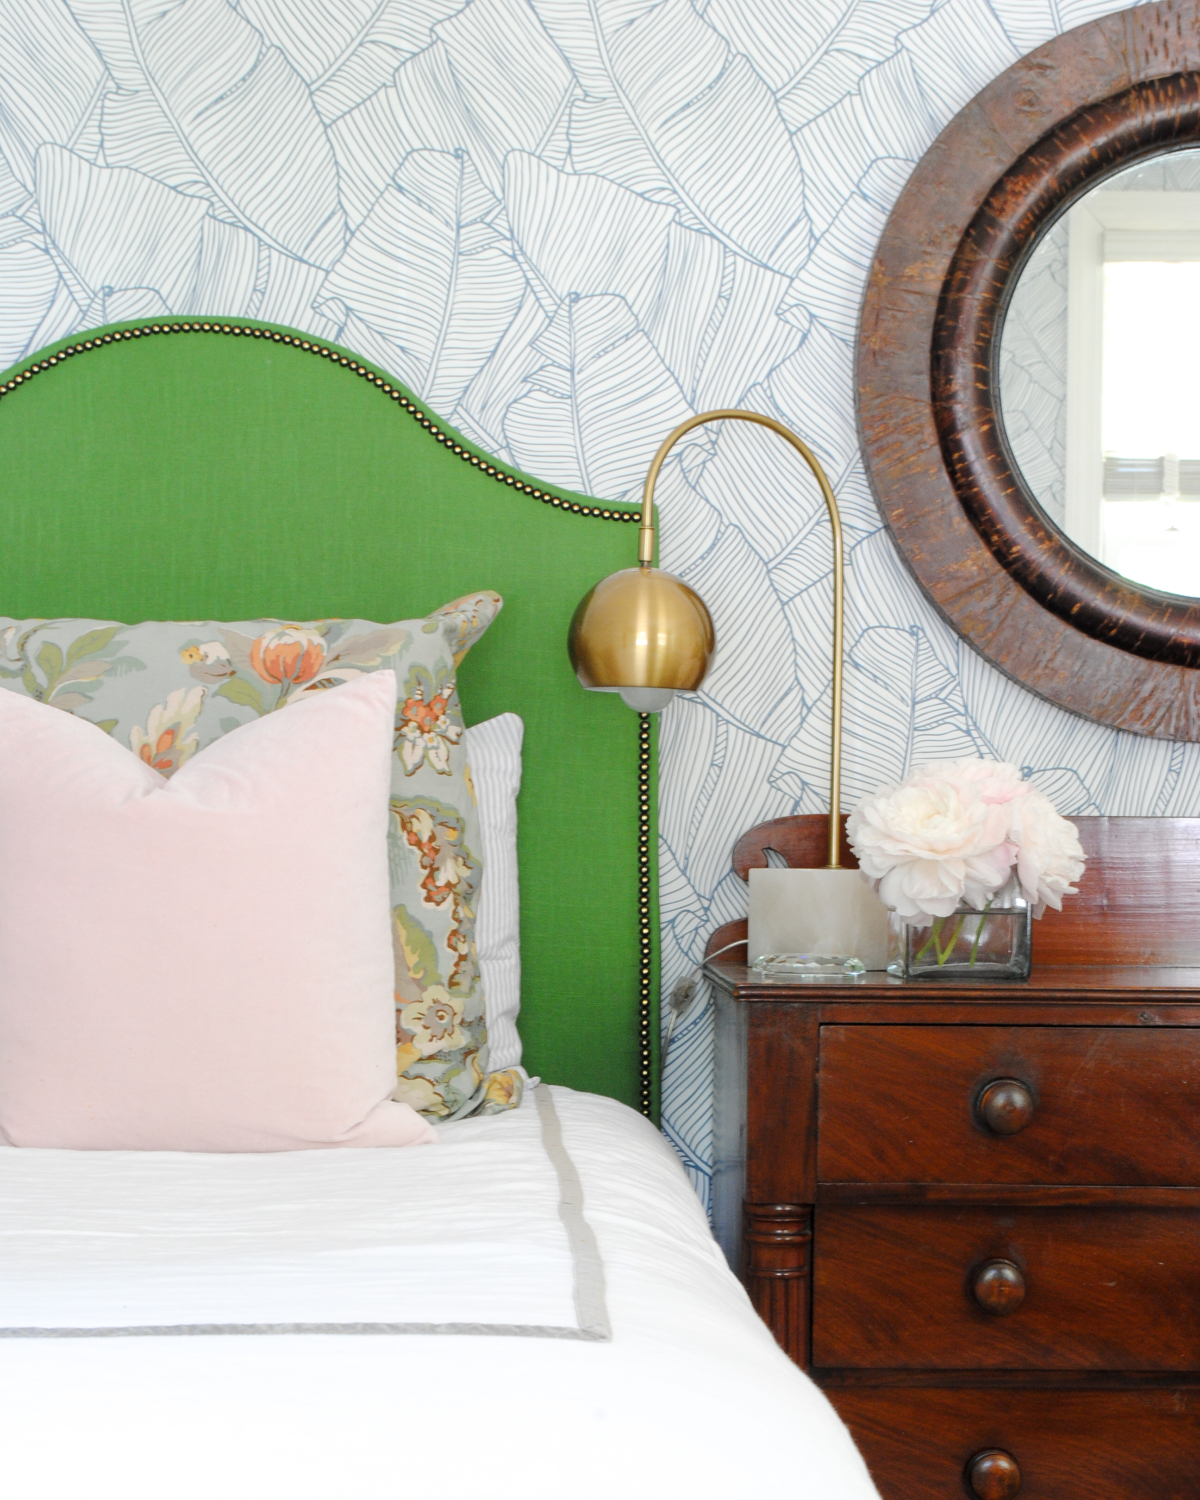 Gorgeous DIY kelly green upholstered headboards - how to make them including how to add that amazing nailhead trim!!